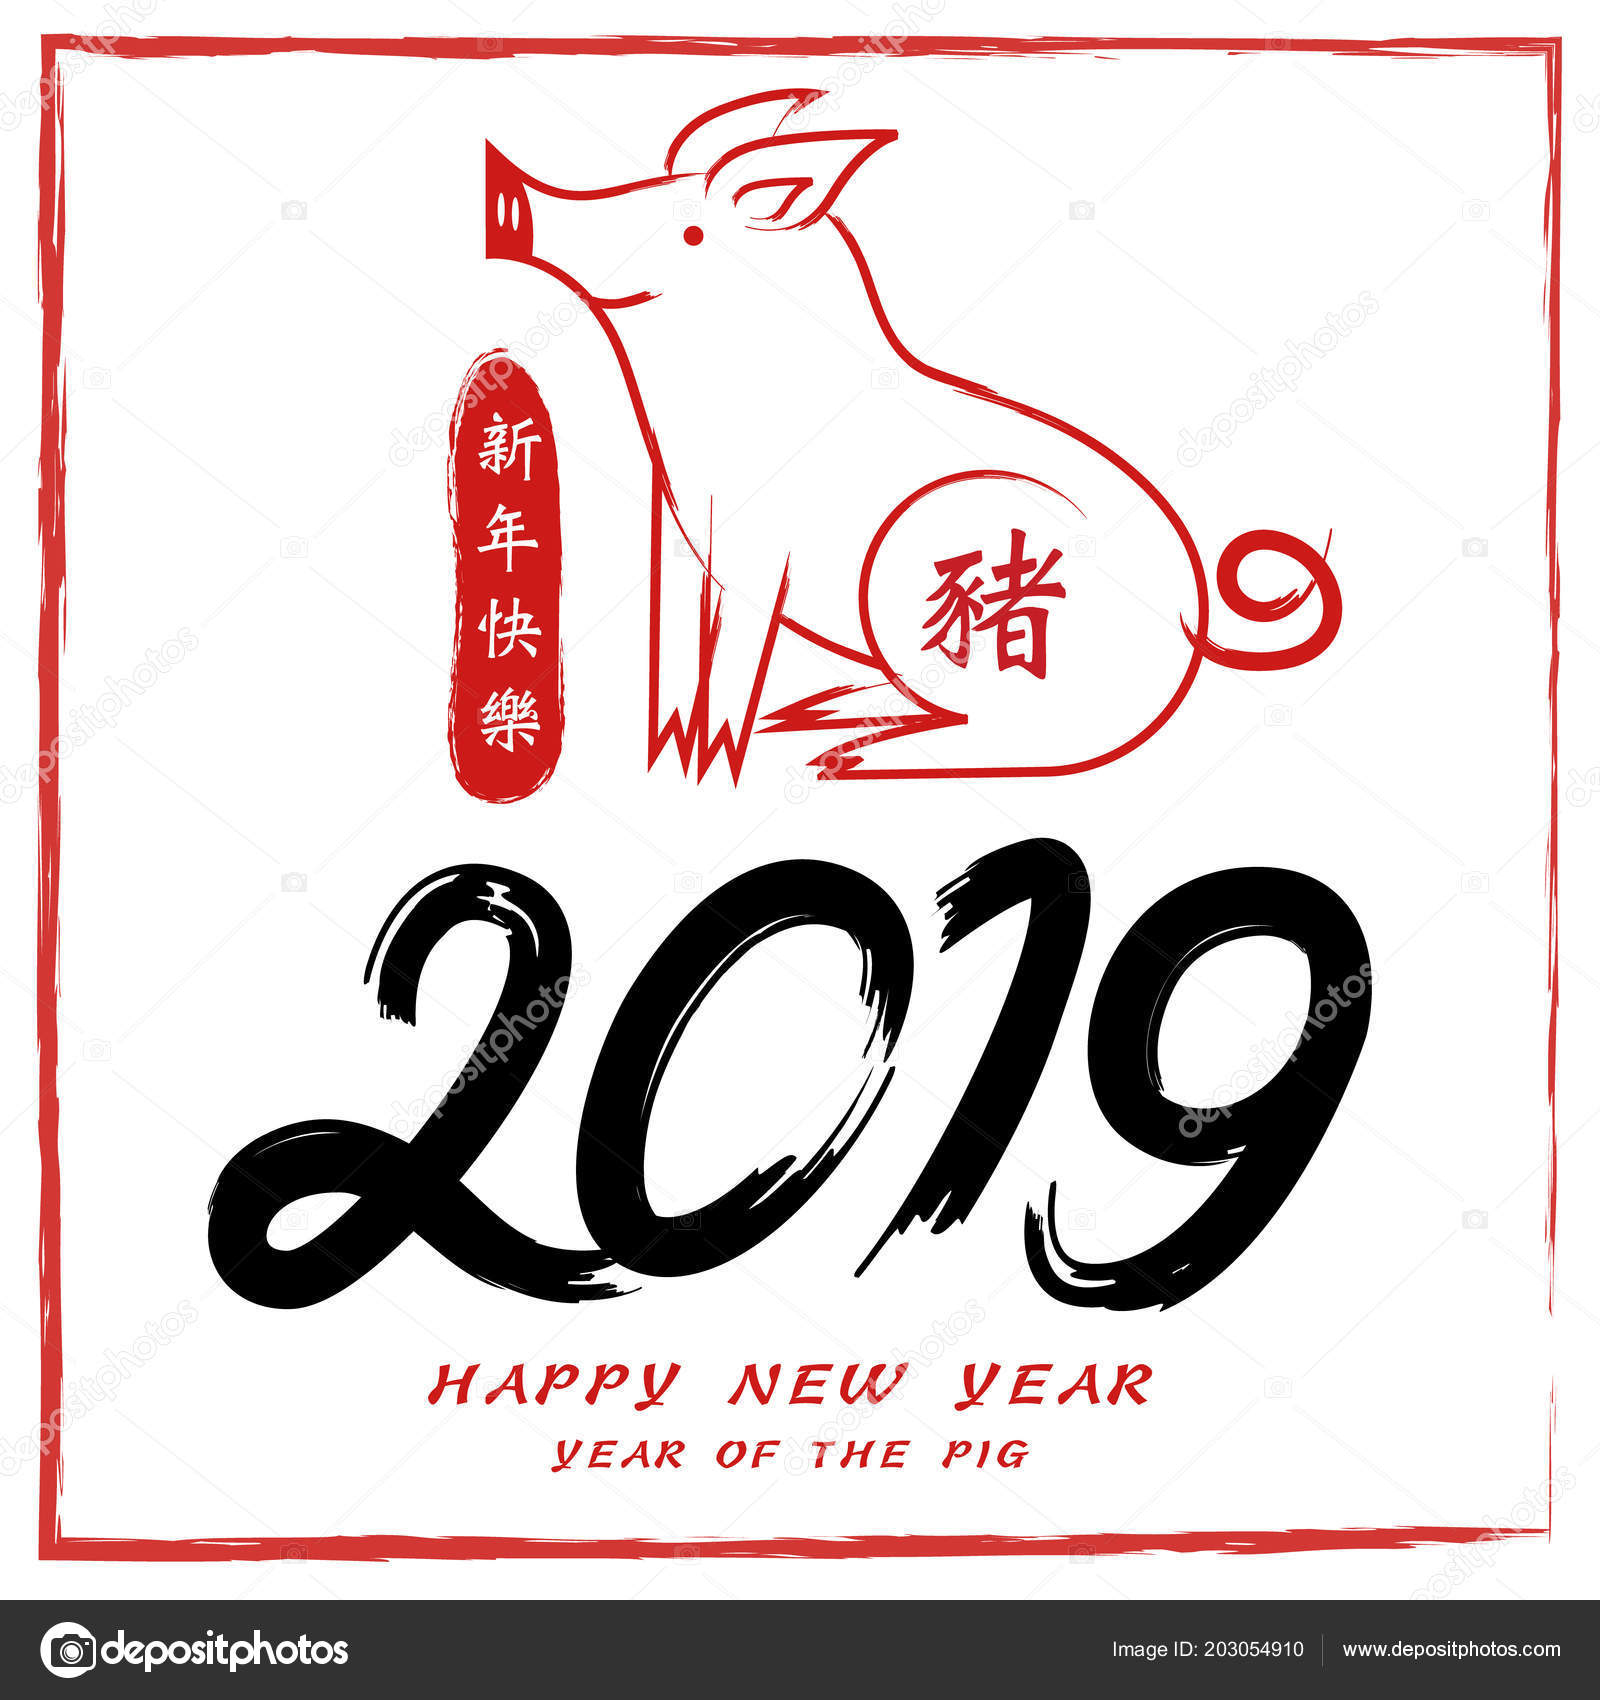 Happy New Year 2019 Chinese New Year Greetings Year Pig Vector De